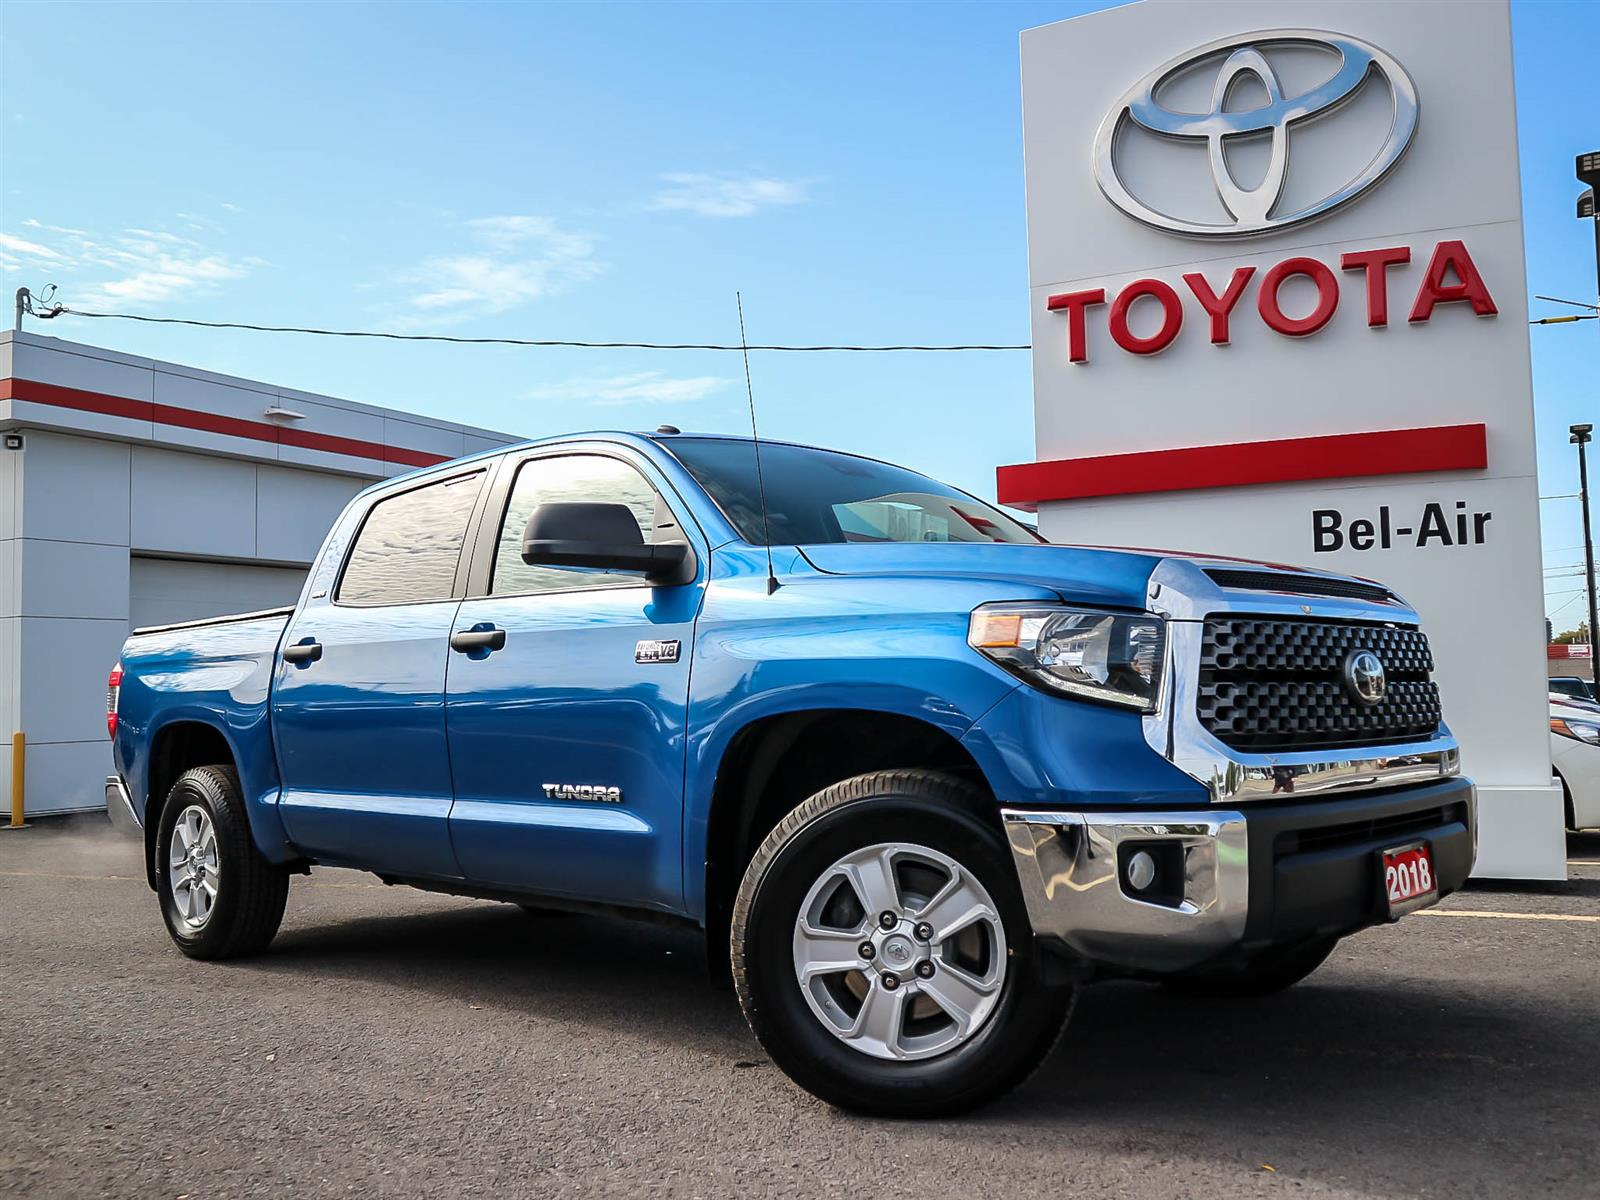 2018 Toyota Tundra at Bel-Air Toyota